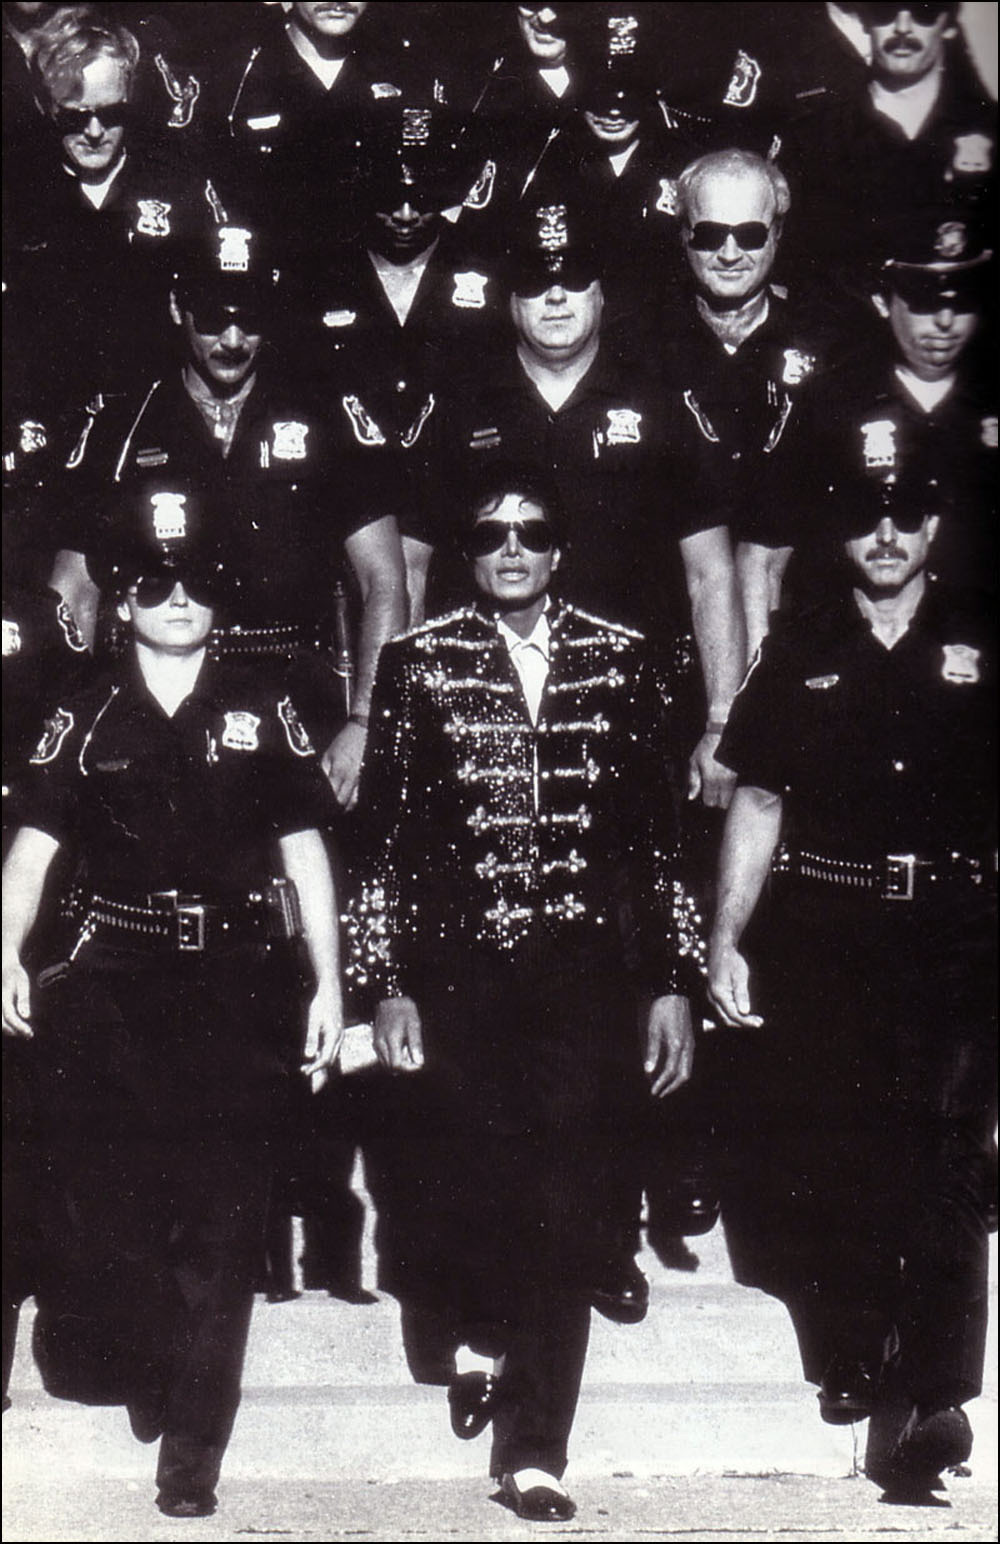 MJ And The Detroit Police 1984